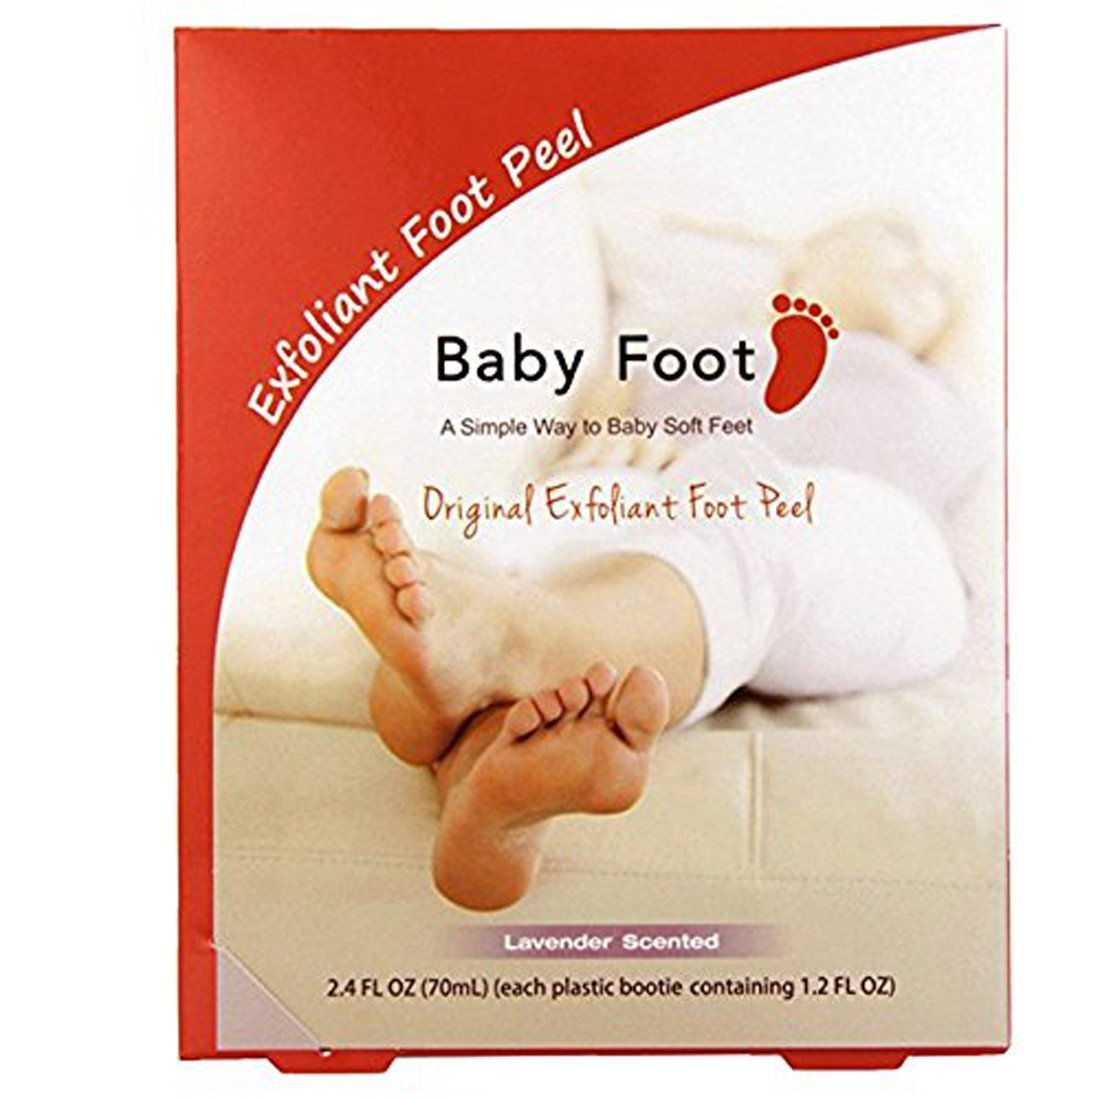 Amazon : Baby Foot Exfoliant Foot Peel, Lavender Scented, 24 Fl Oz :  Corn And Callus Treatment Products : Beauty